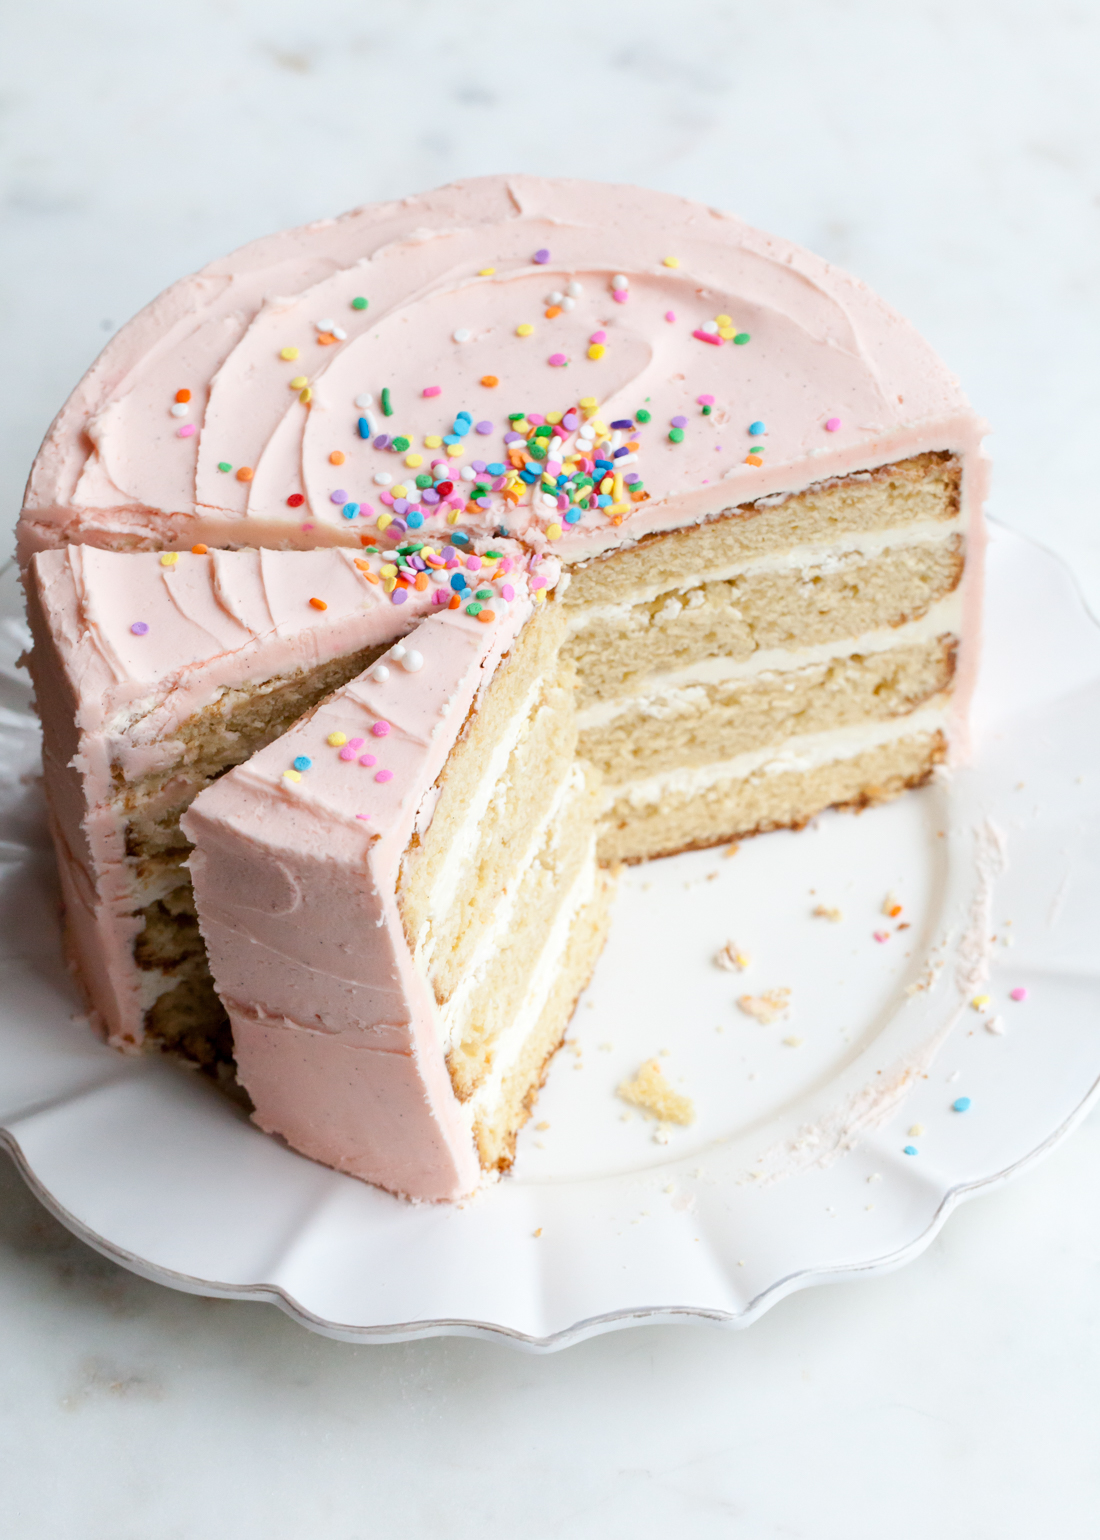 Baking Cakes The Top 10 Best Baking Tips For Layer Cakes Style Sweet Ca